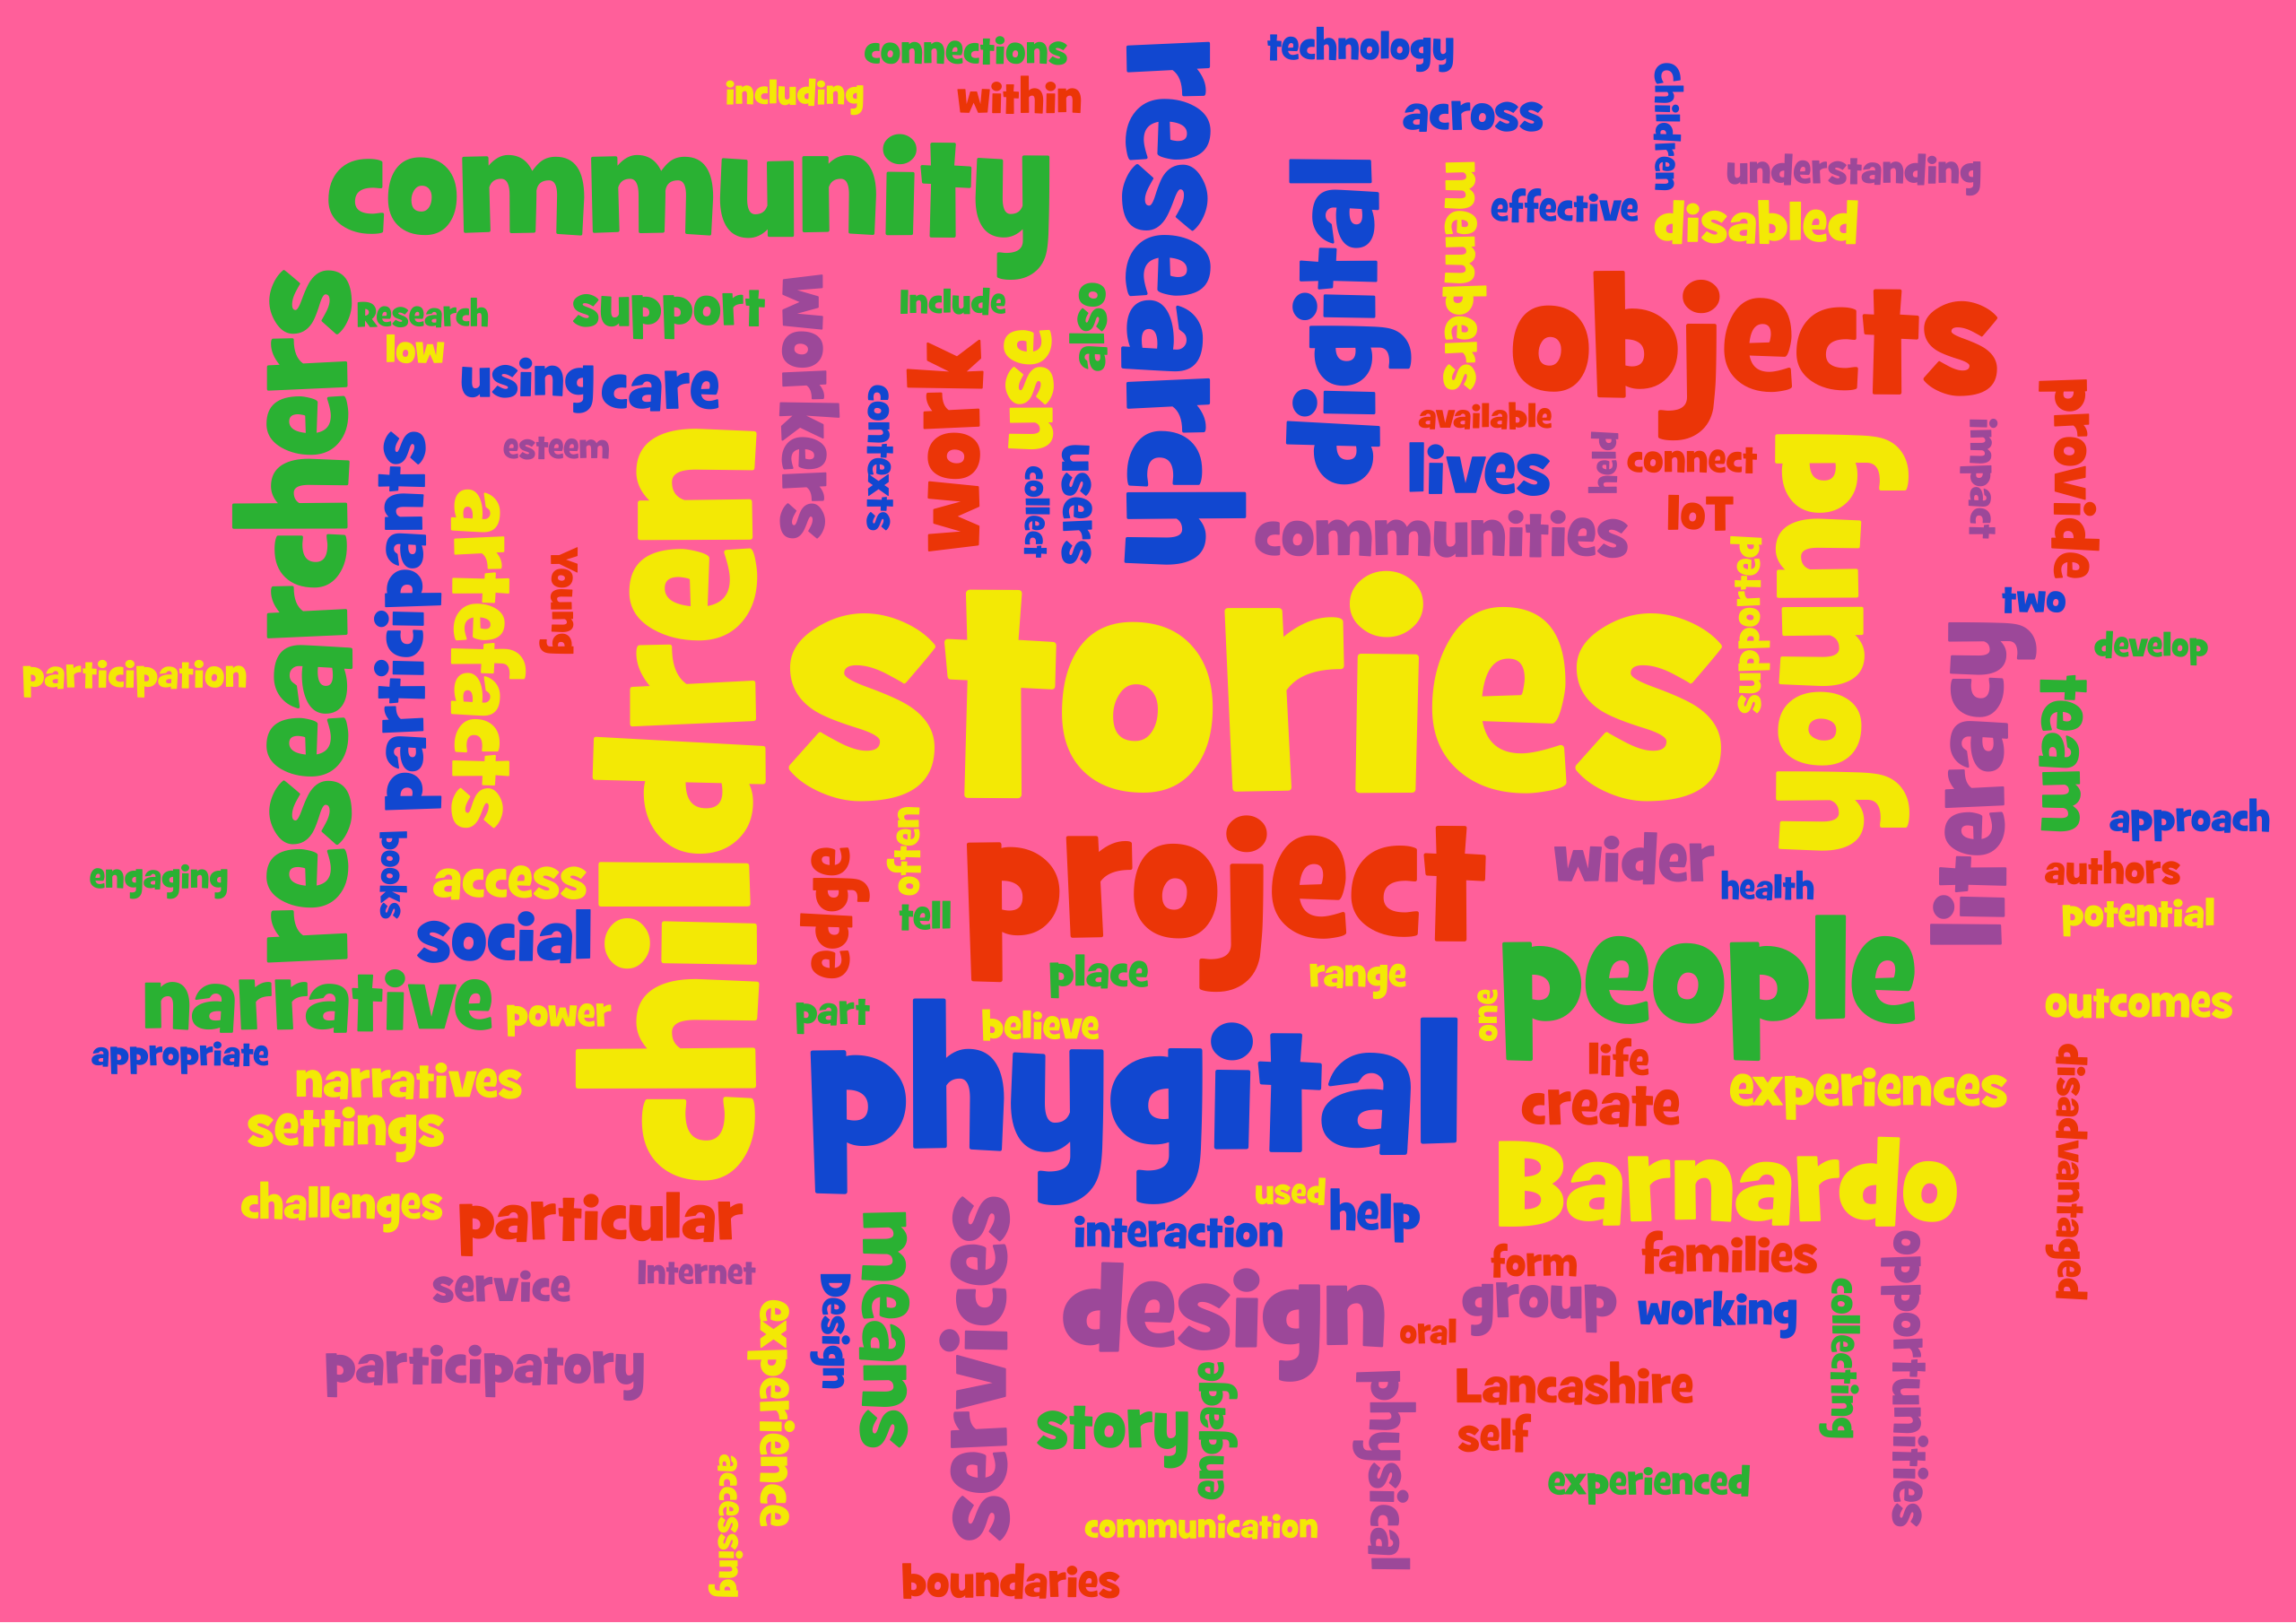 Our Research Questions – stories2connect